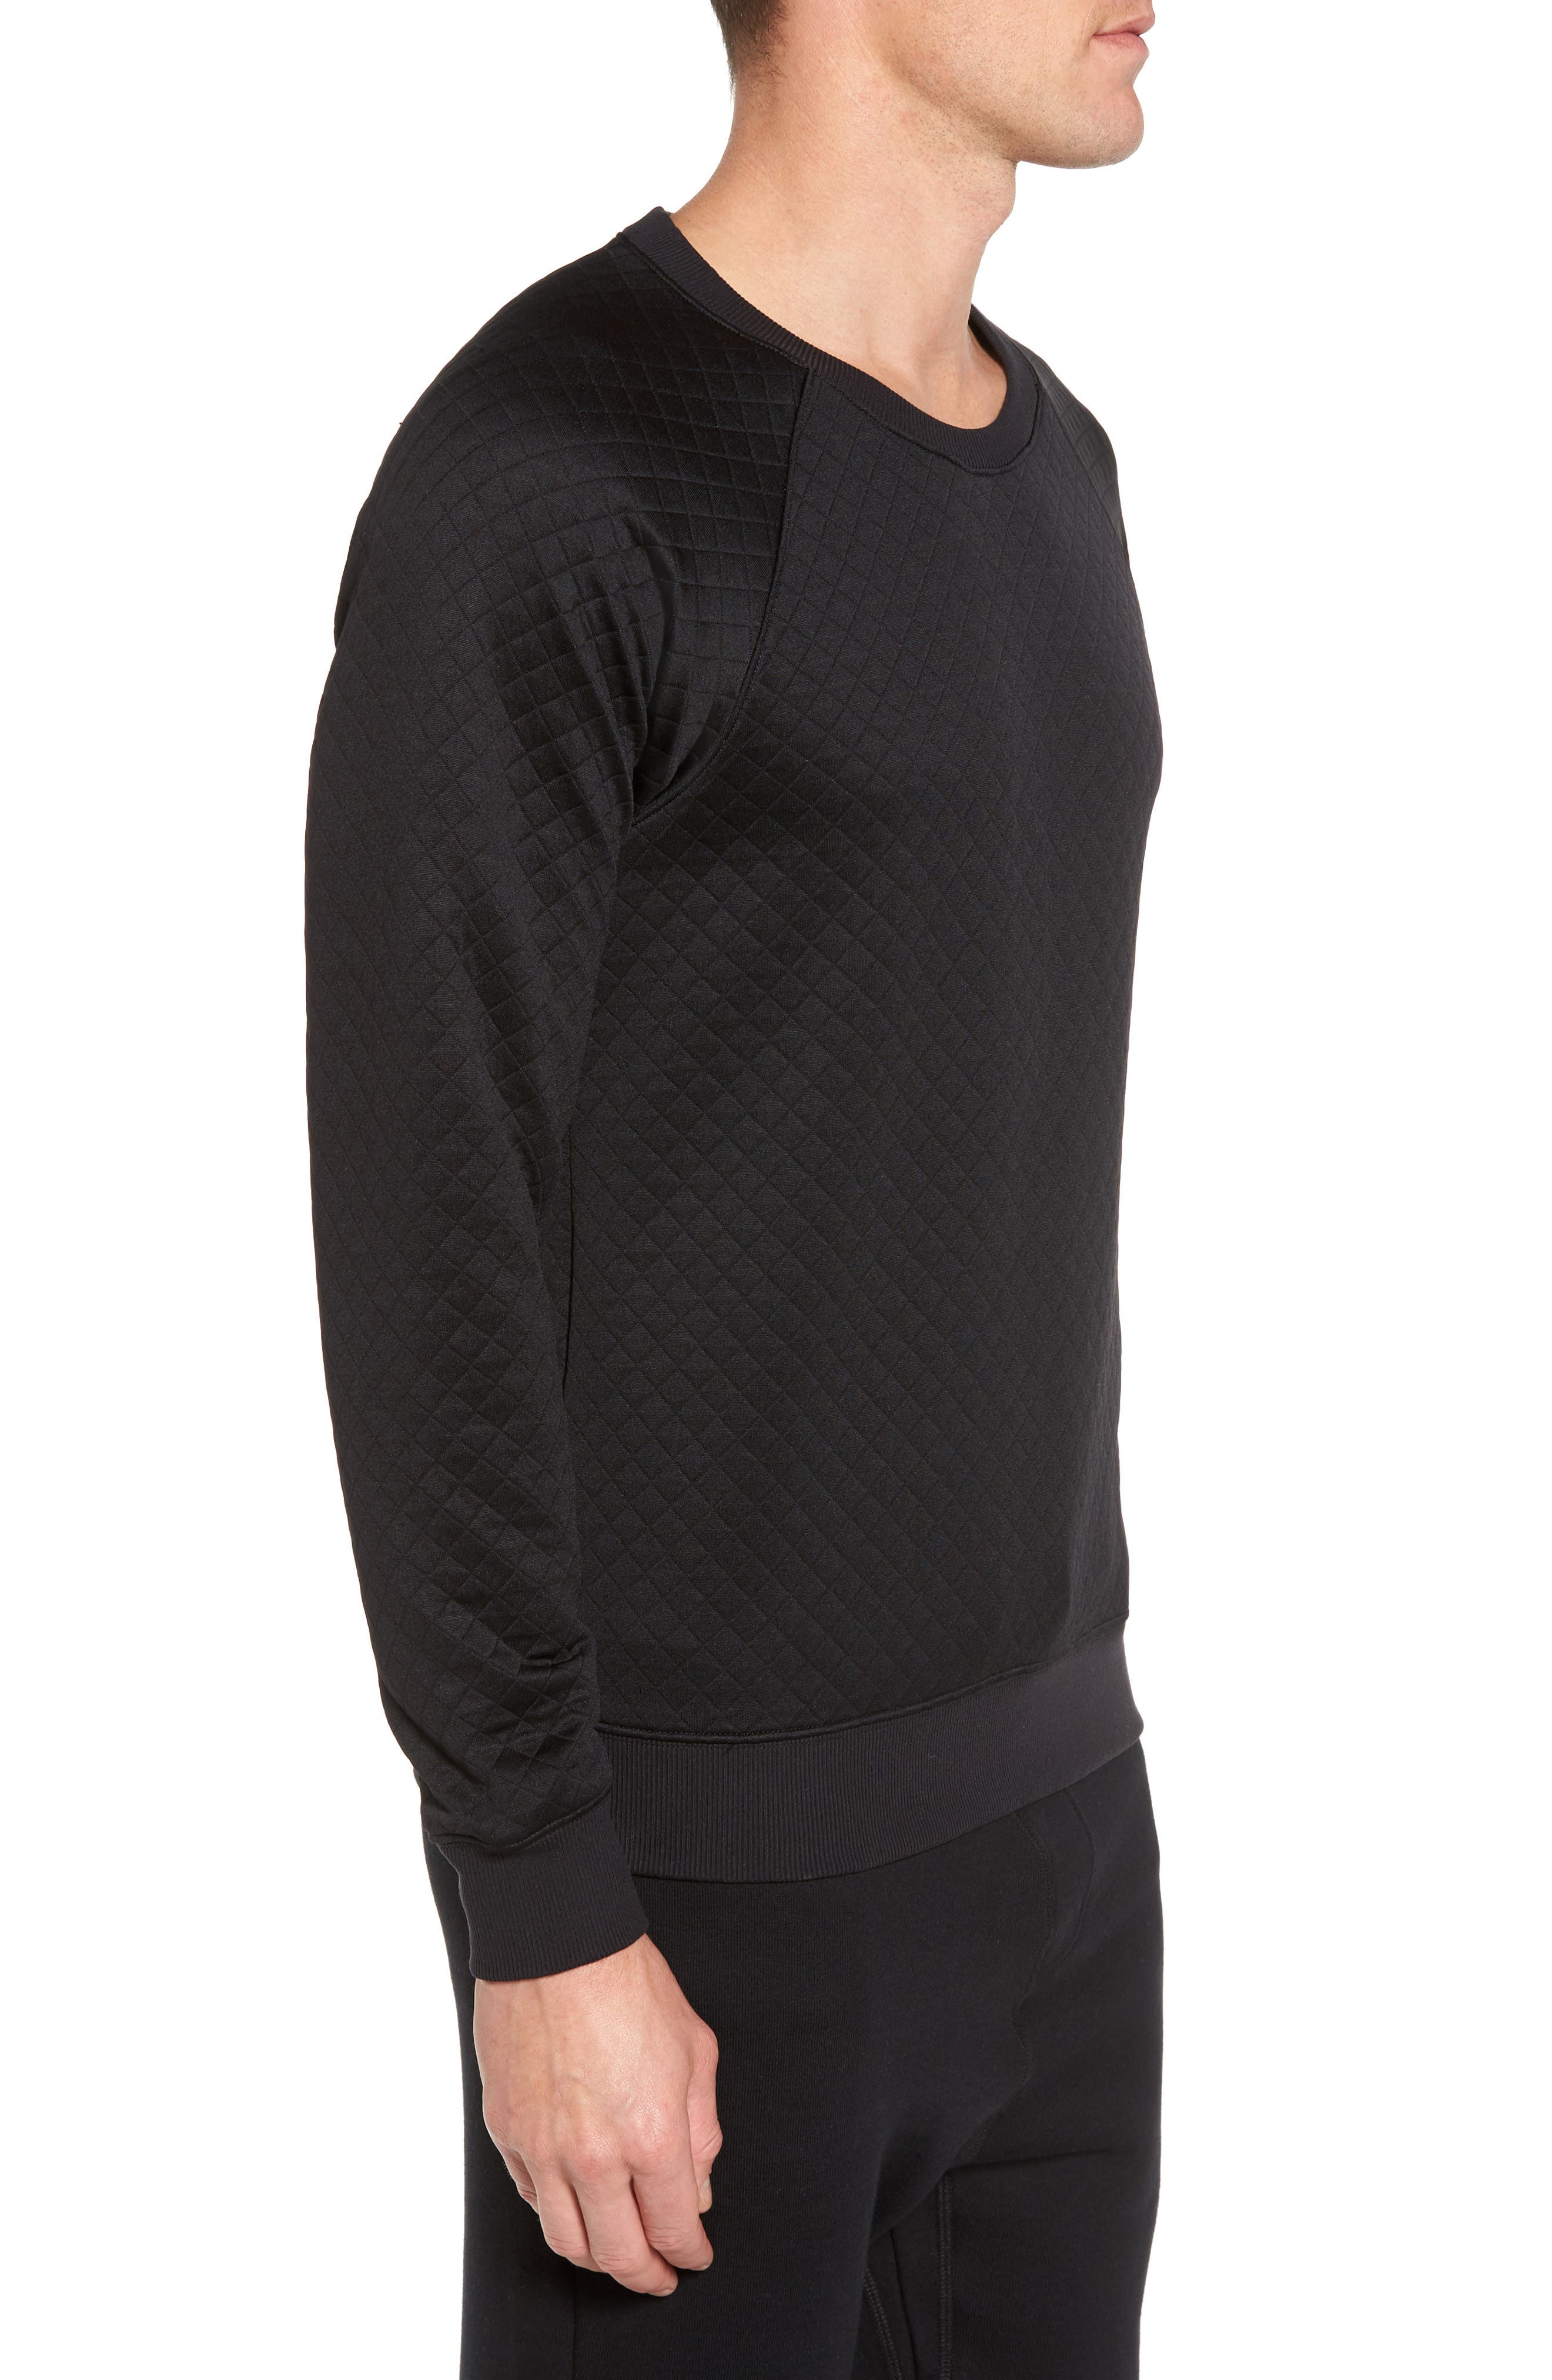 Yama Relaxed Slim Fit Quilted Sweatshirt,                             Alternate thumbnail 3, color,                             Black